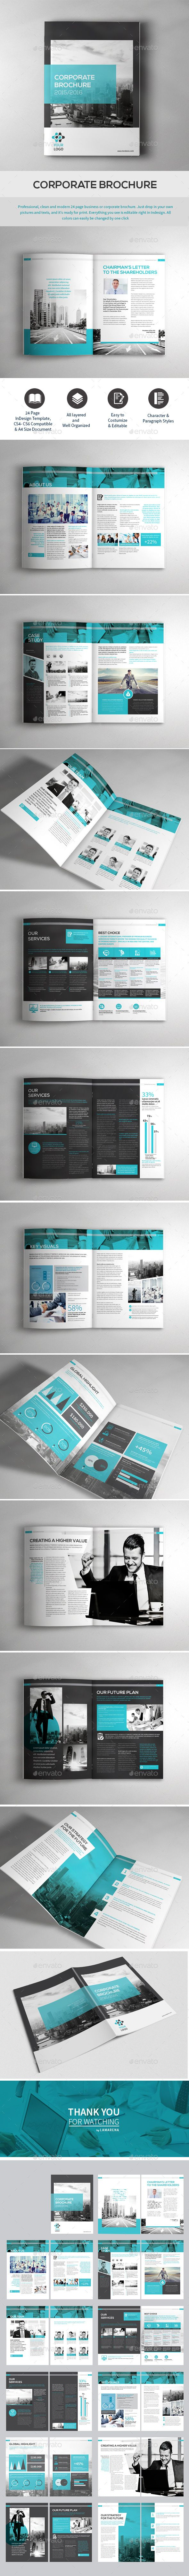 Company Brochure Template InDesign INDD. Download here: http ...